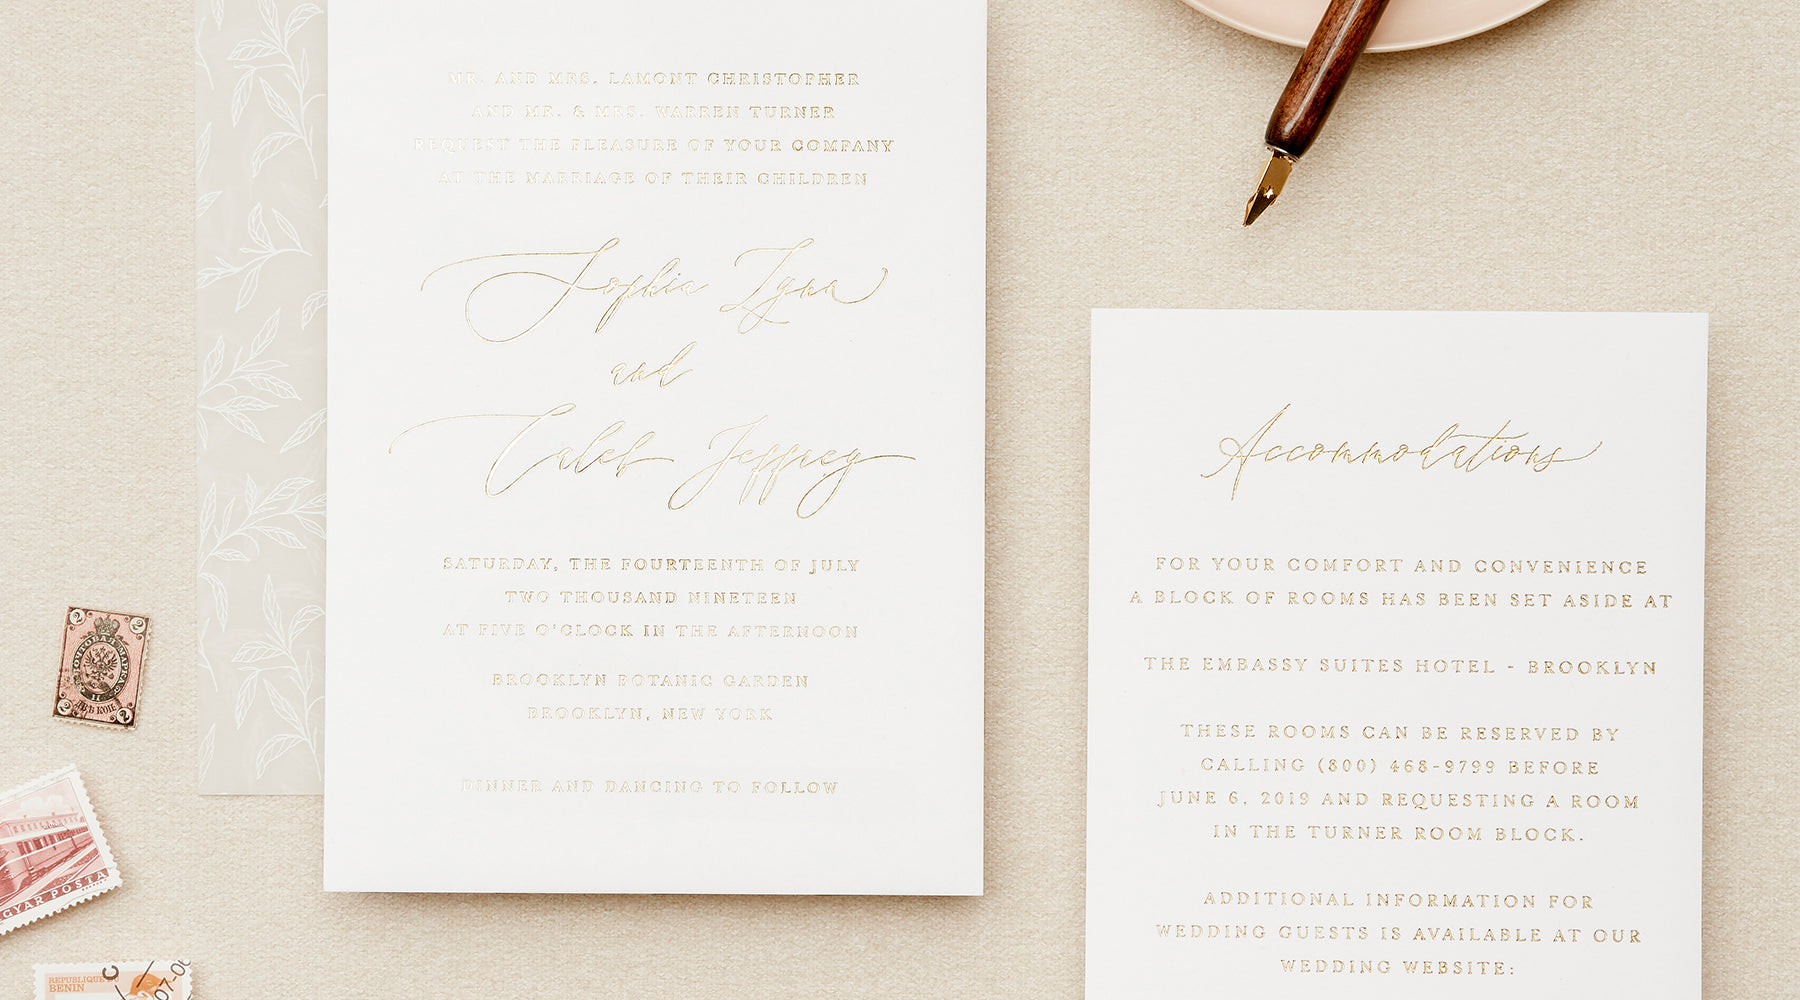 Formal Wedding Invitation Wording: Examples & Pro Tips